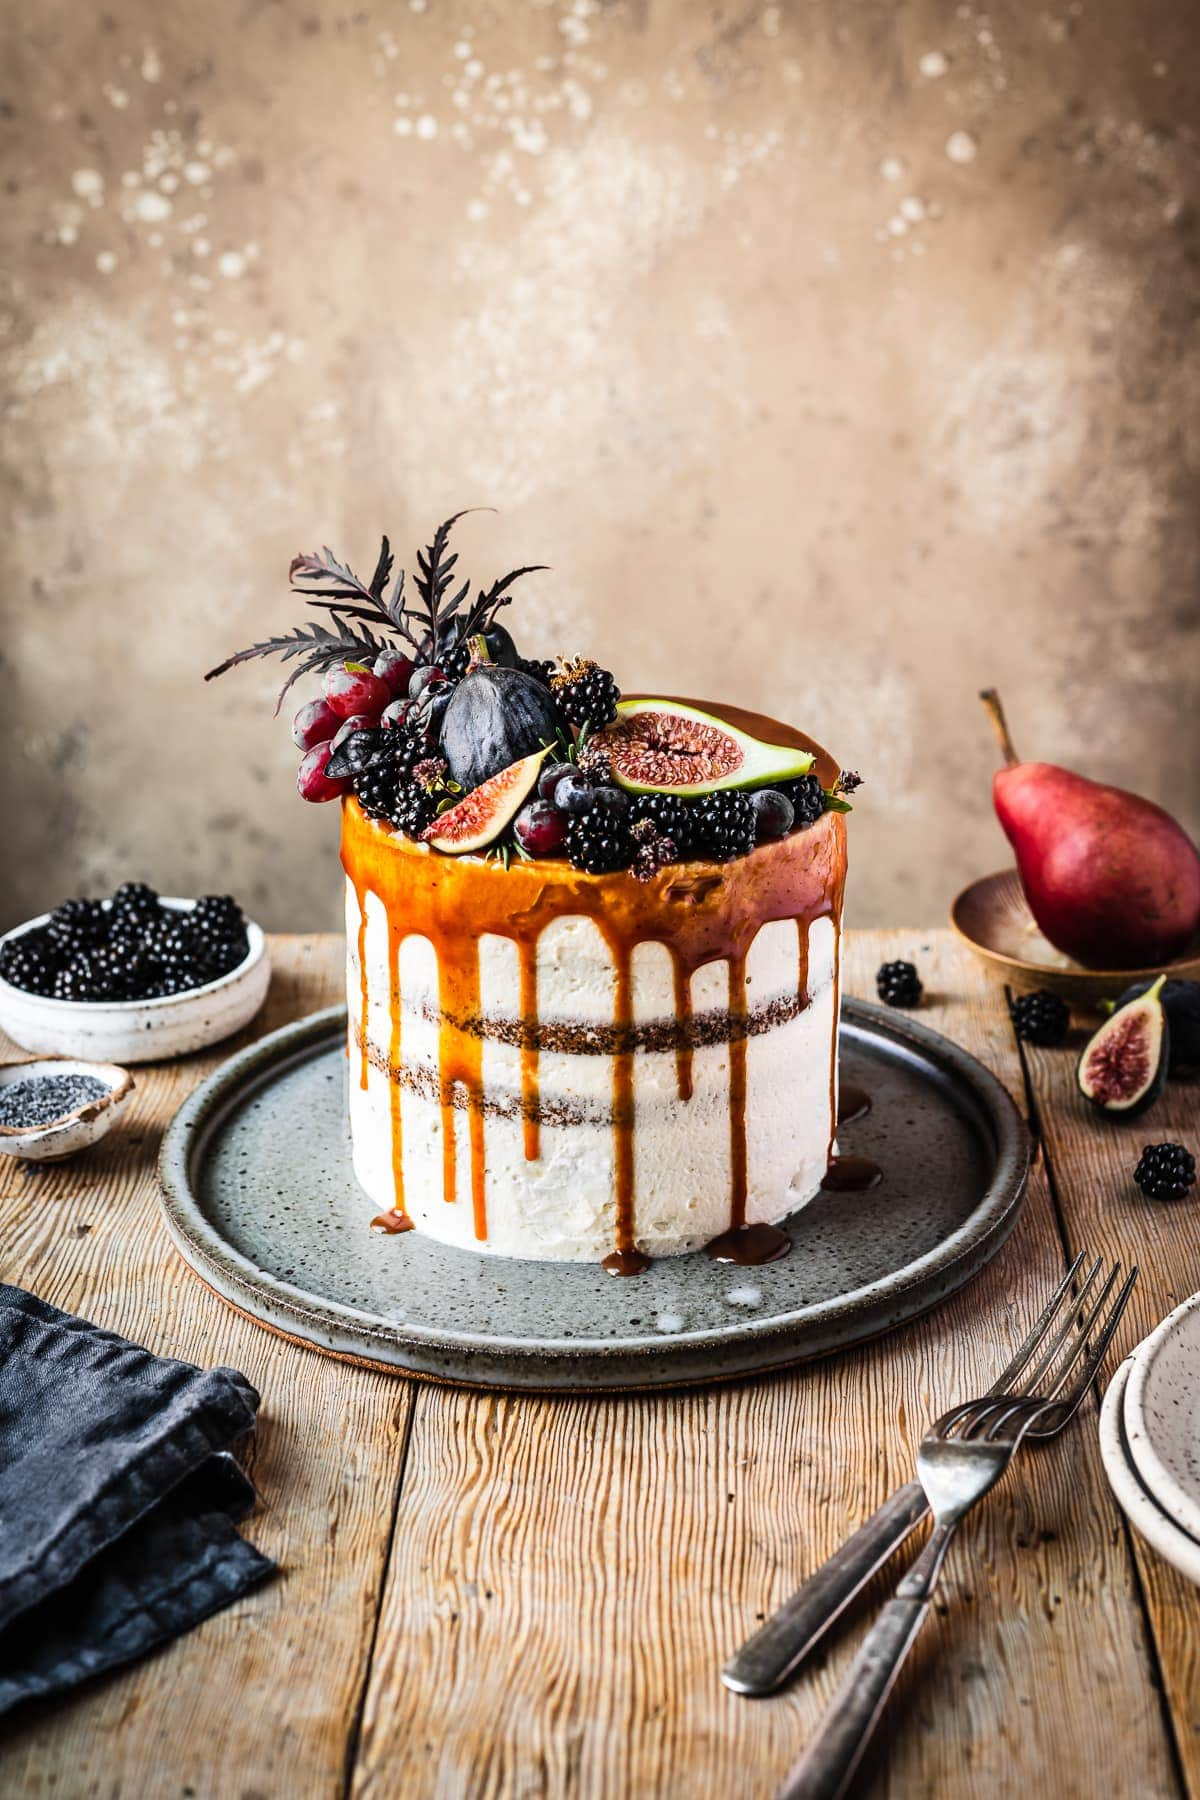 A white frosted blackberry poppy seed layer cake with a caramel drip and a crown of late summer fruit on top. The cake sits on a blue grey ceramic platter on a rustic wooden table with forks and small bowls of poppy seeds and blackberries nearby. There is a warm tan stone background behind the table.